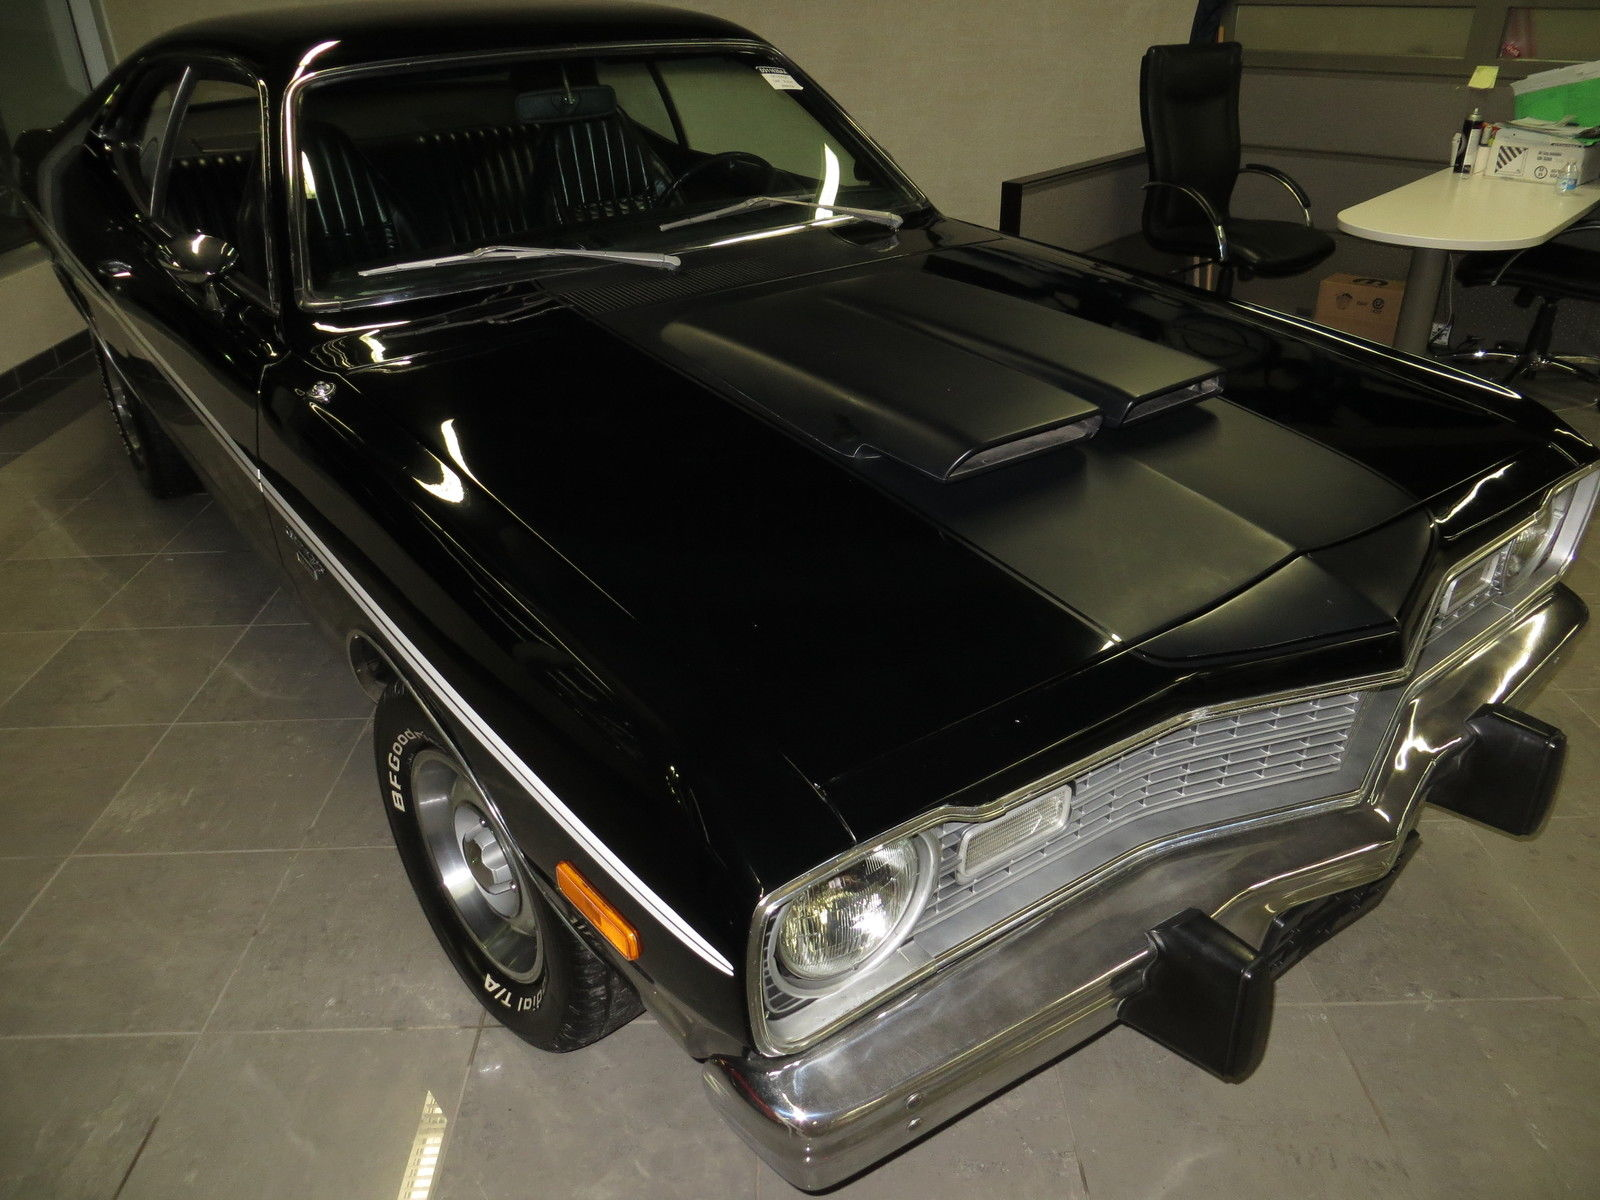 Napleton Arlington Heights >> 1973 Dodge Dart Sport 340 5.6L